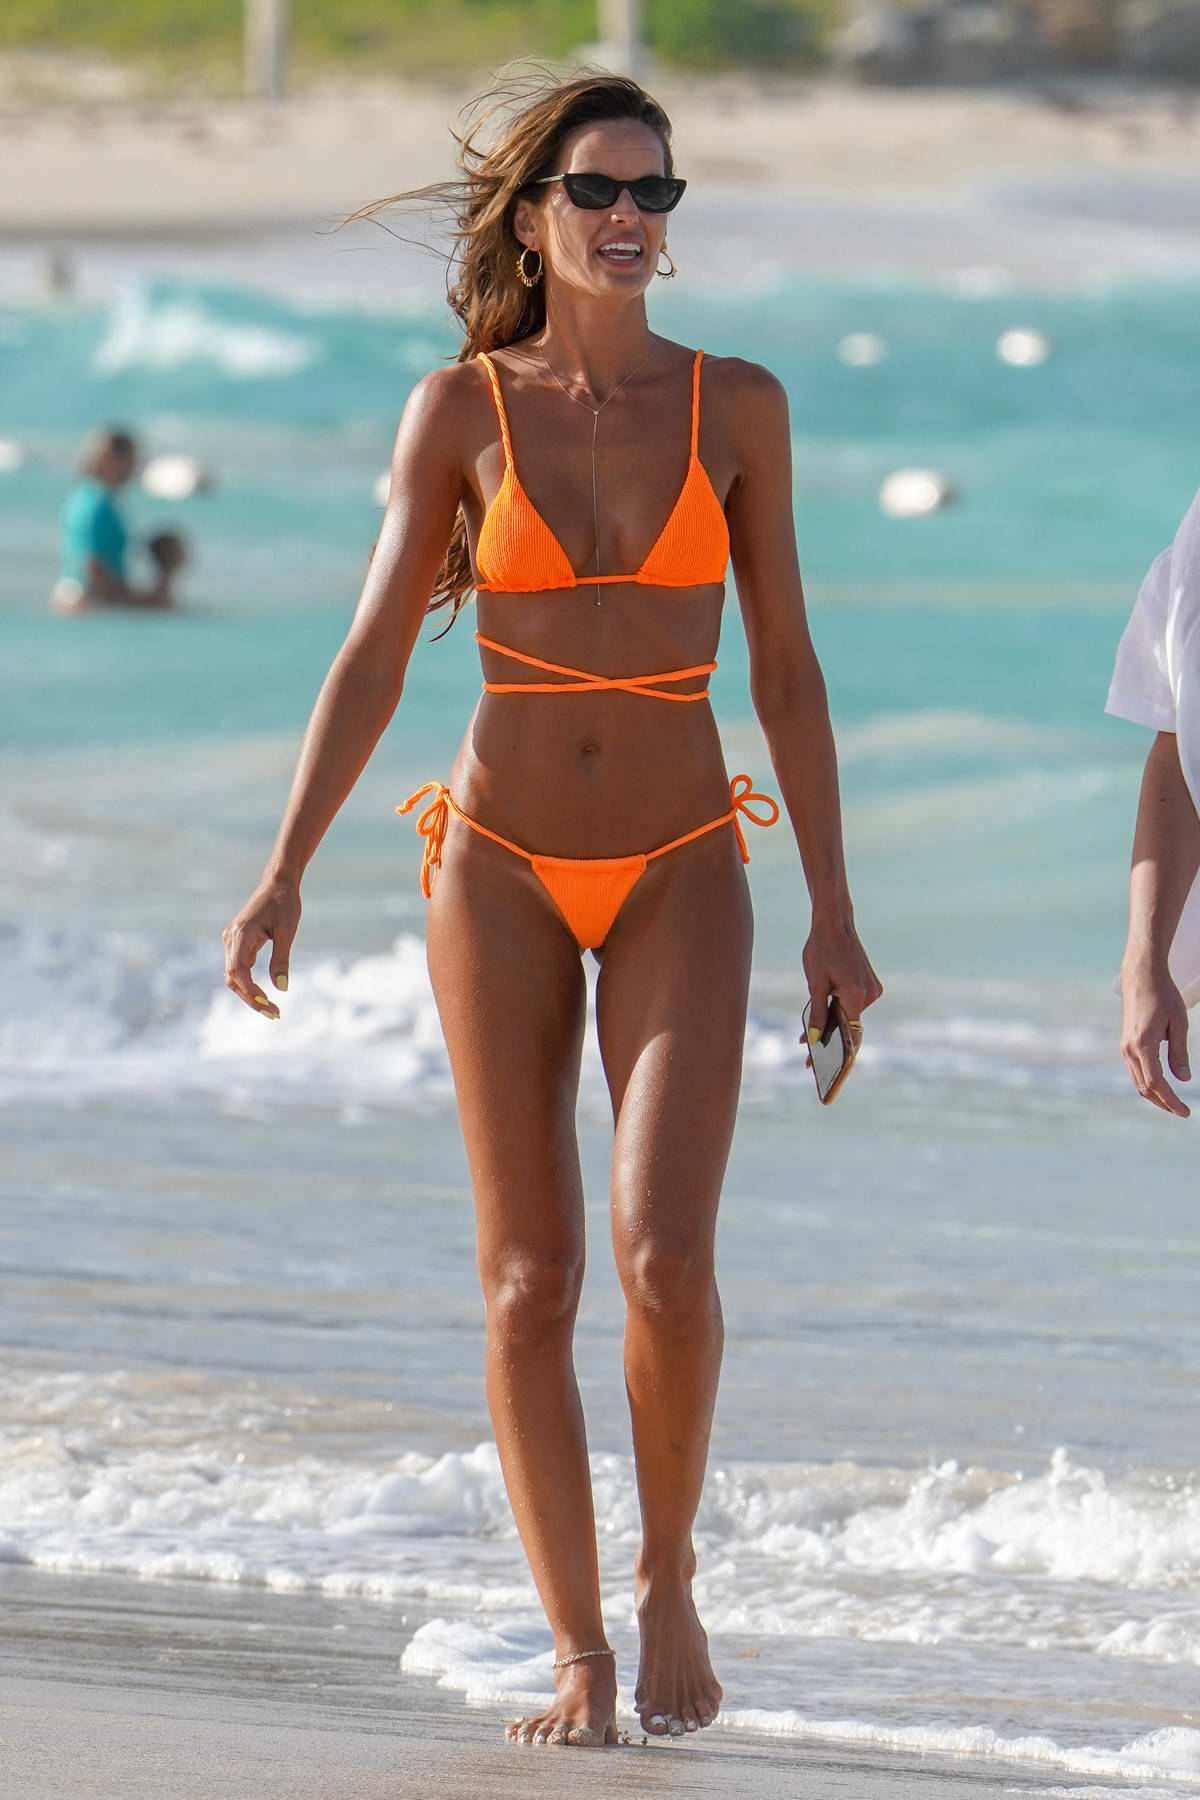 Isabelle Goulard looks sensational in an orange bikini as she hits the Eden Rock hotel beach in St Barth, France